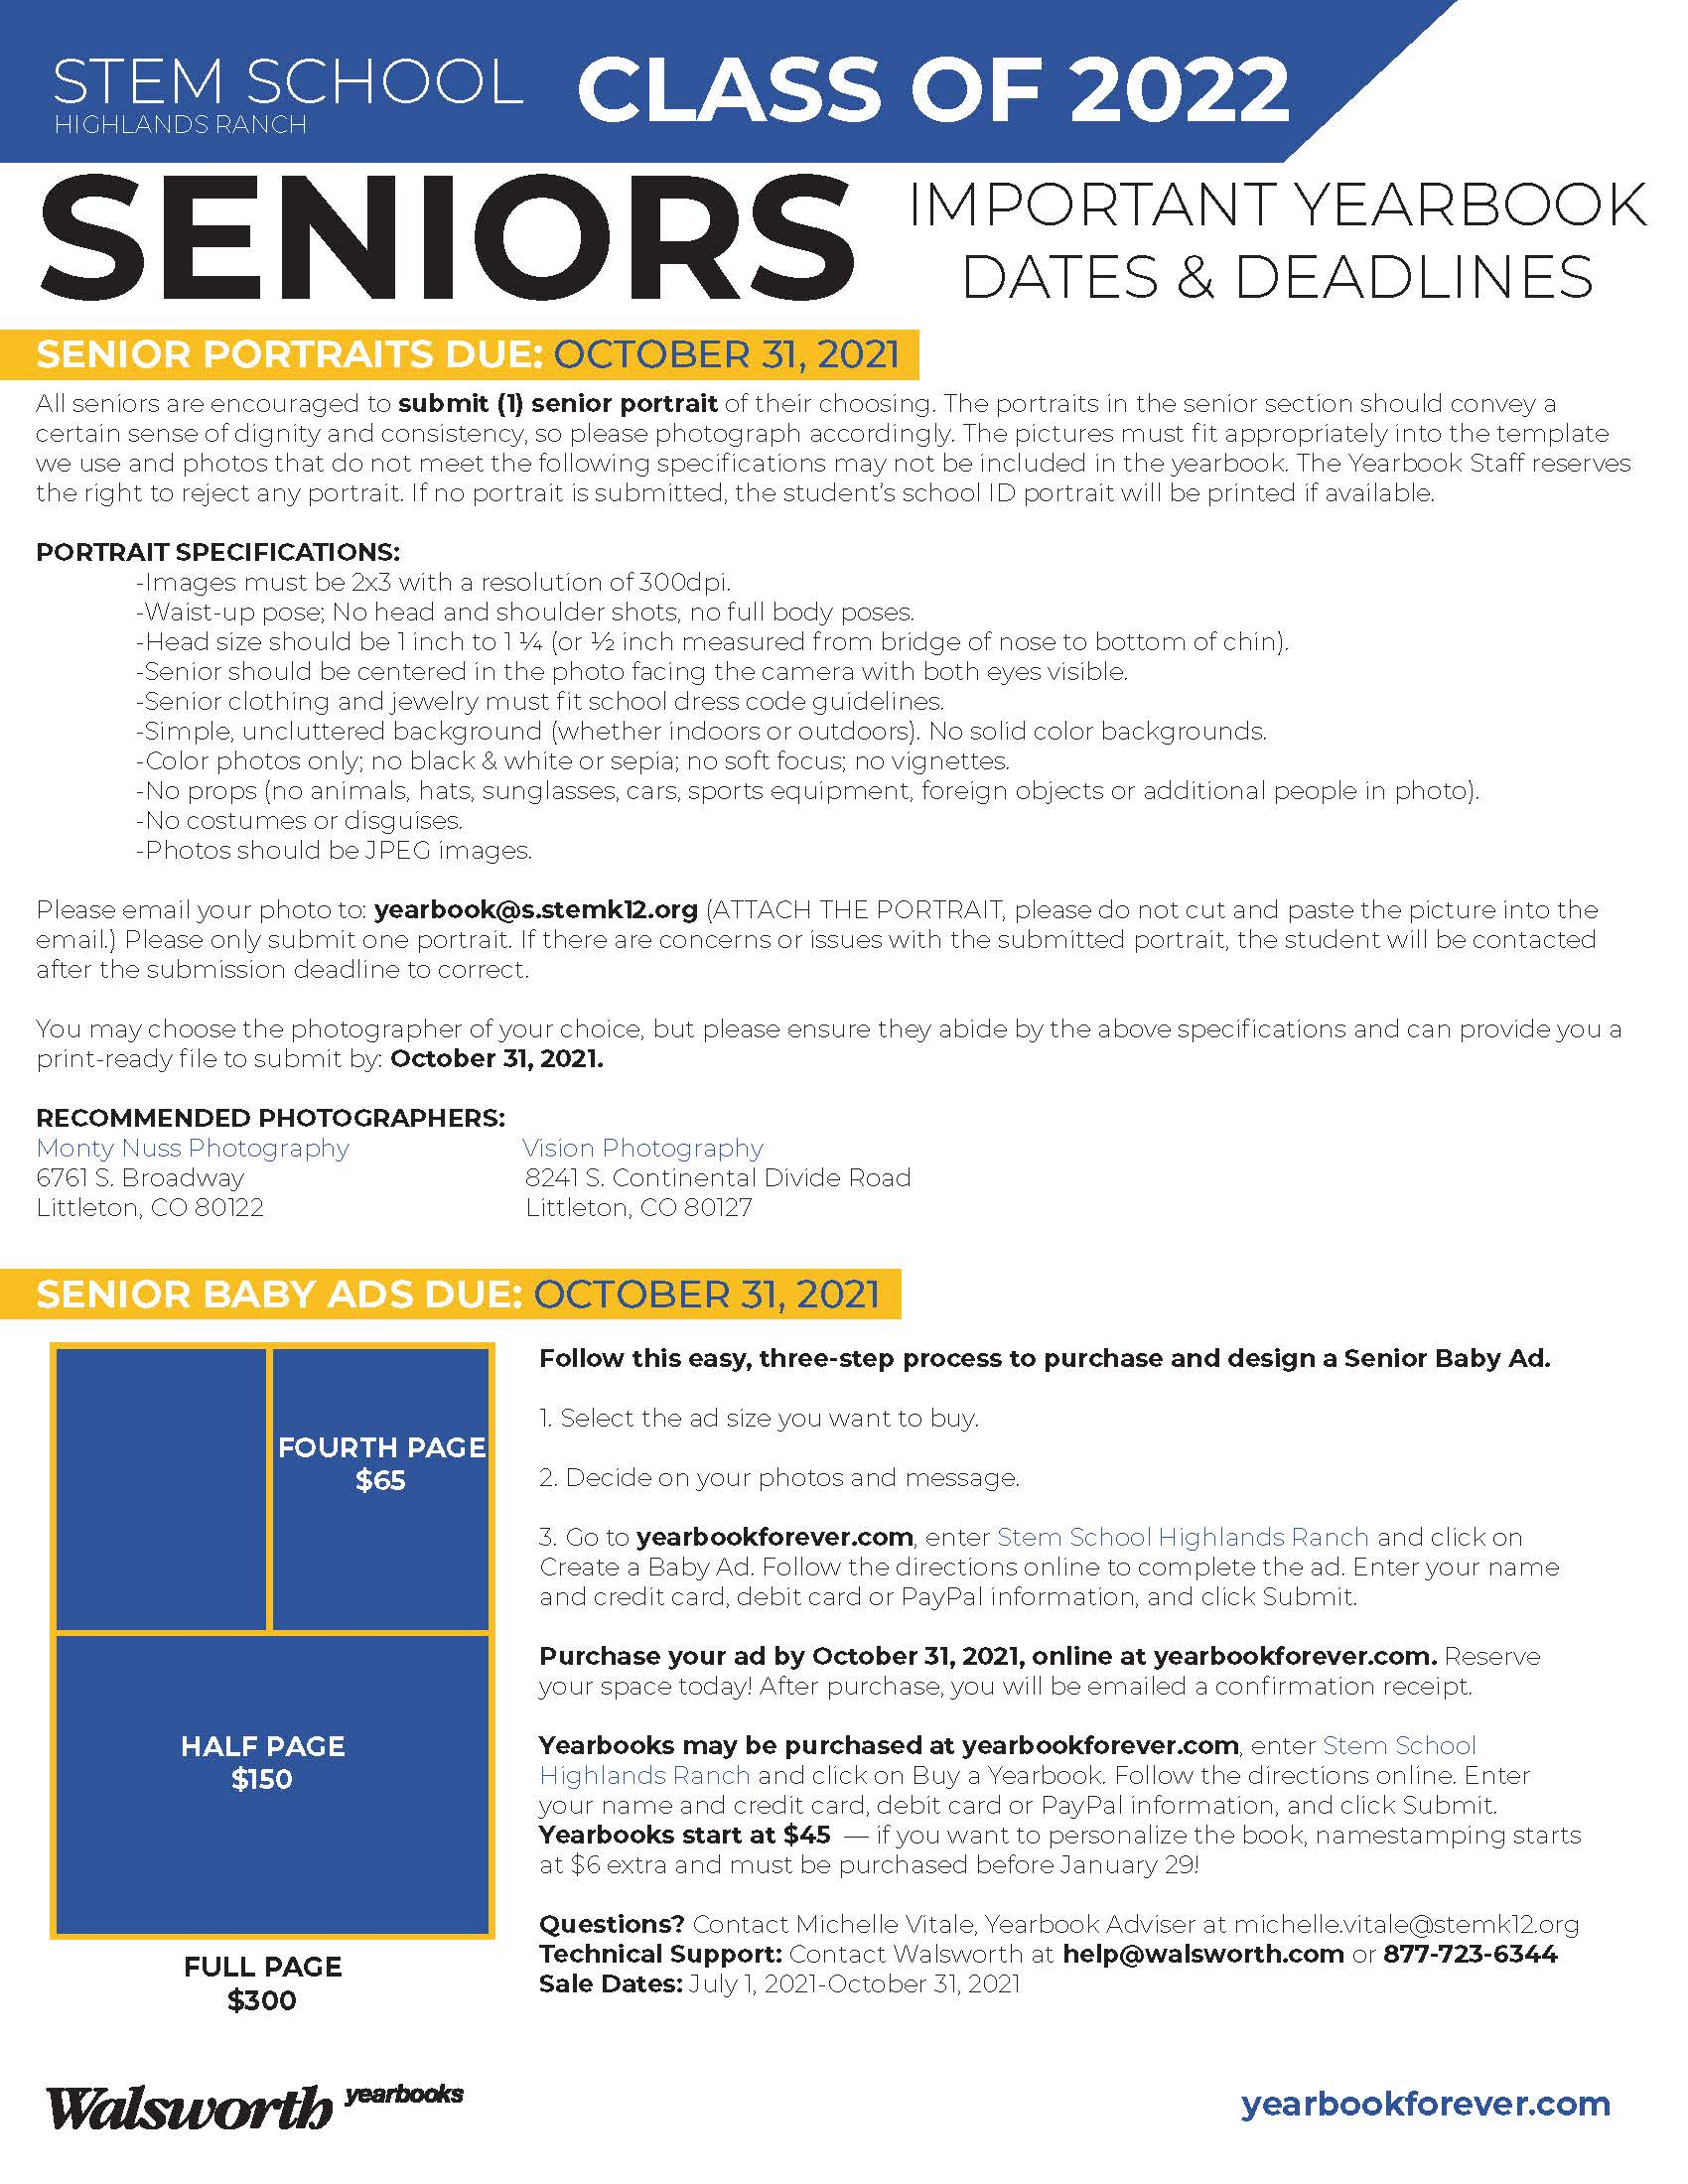 STEM School Highlands Ranch_2022 Senior Important Yearbook Dates and Deadlines